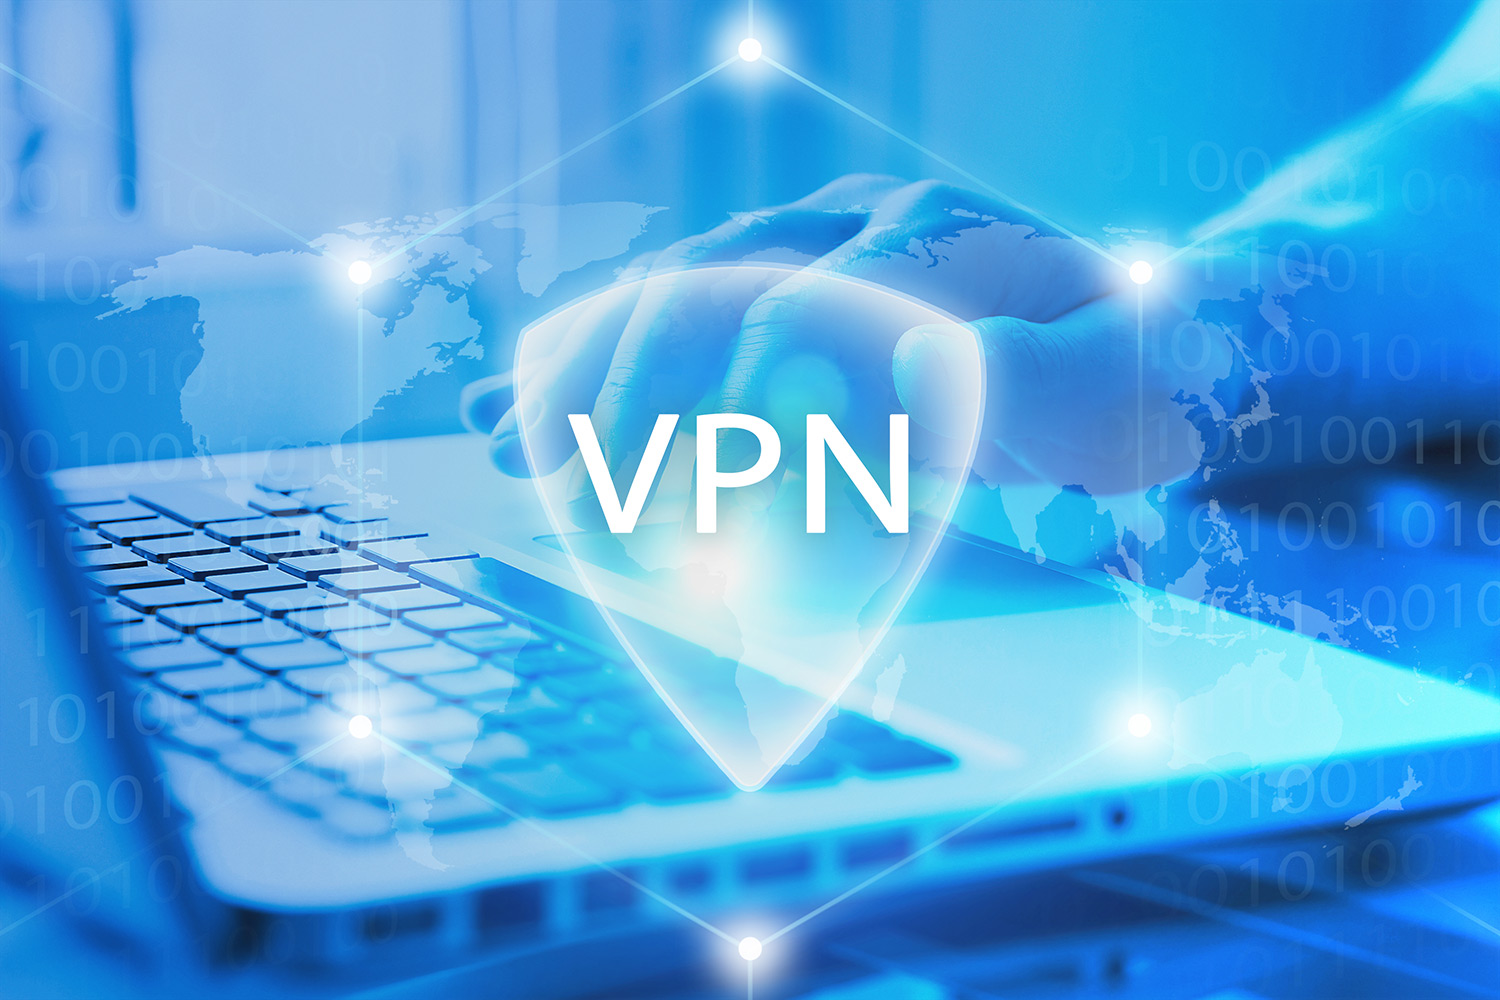 What are the different protocols of VPN?